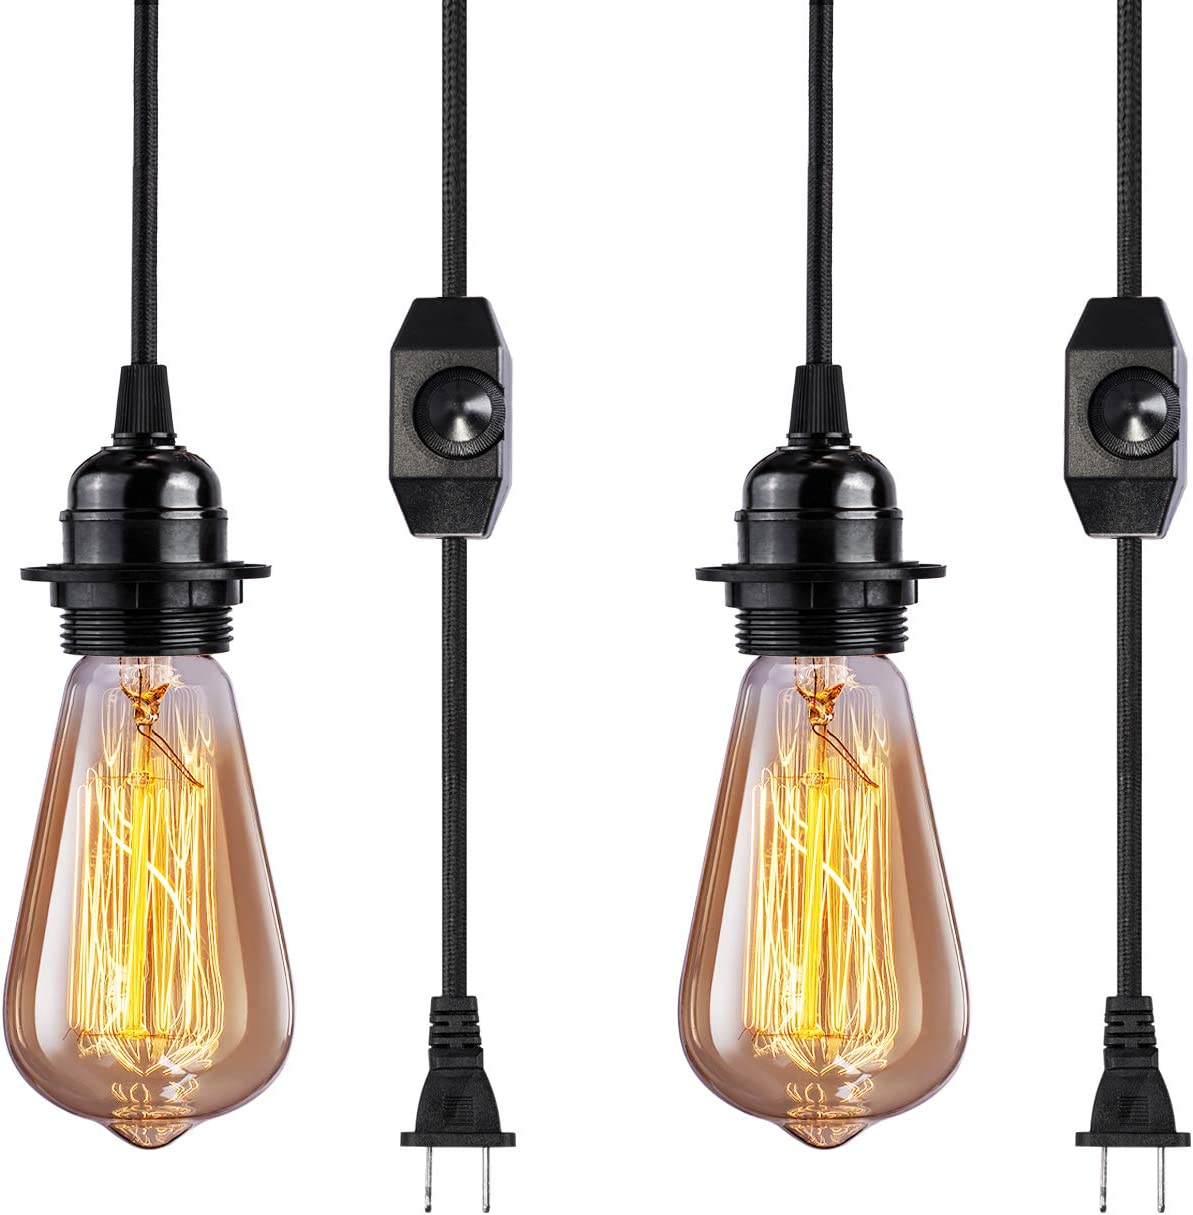 Vintage Plug in Hanging Light Kit, Elibbren Industrial Style Pendant Lighting E26 E27 Lamp Socket 12.14FT Twisted Textile Black Cord with Dimmable On Off Switch Plug in Lamp Fixture 2 Pack